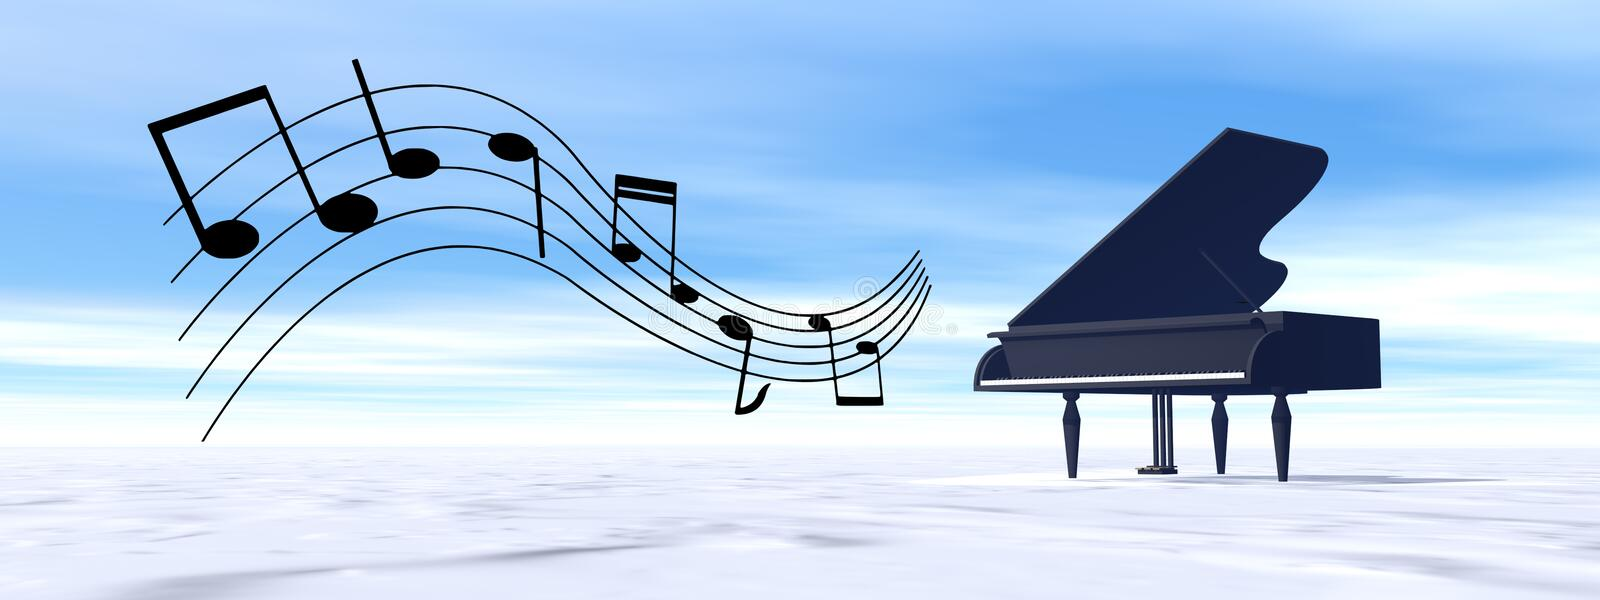 Classical black grand piano playing melody in the winter nature - 3D render royalty free illustration